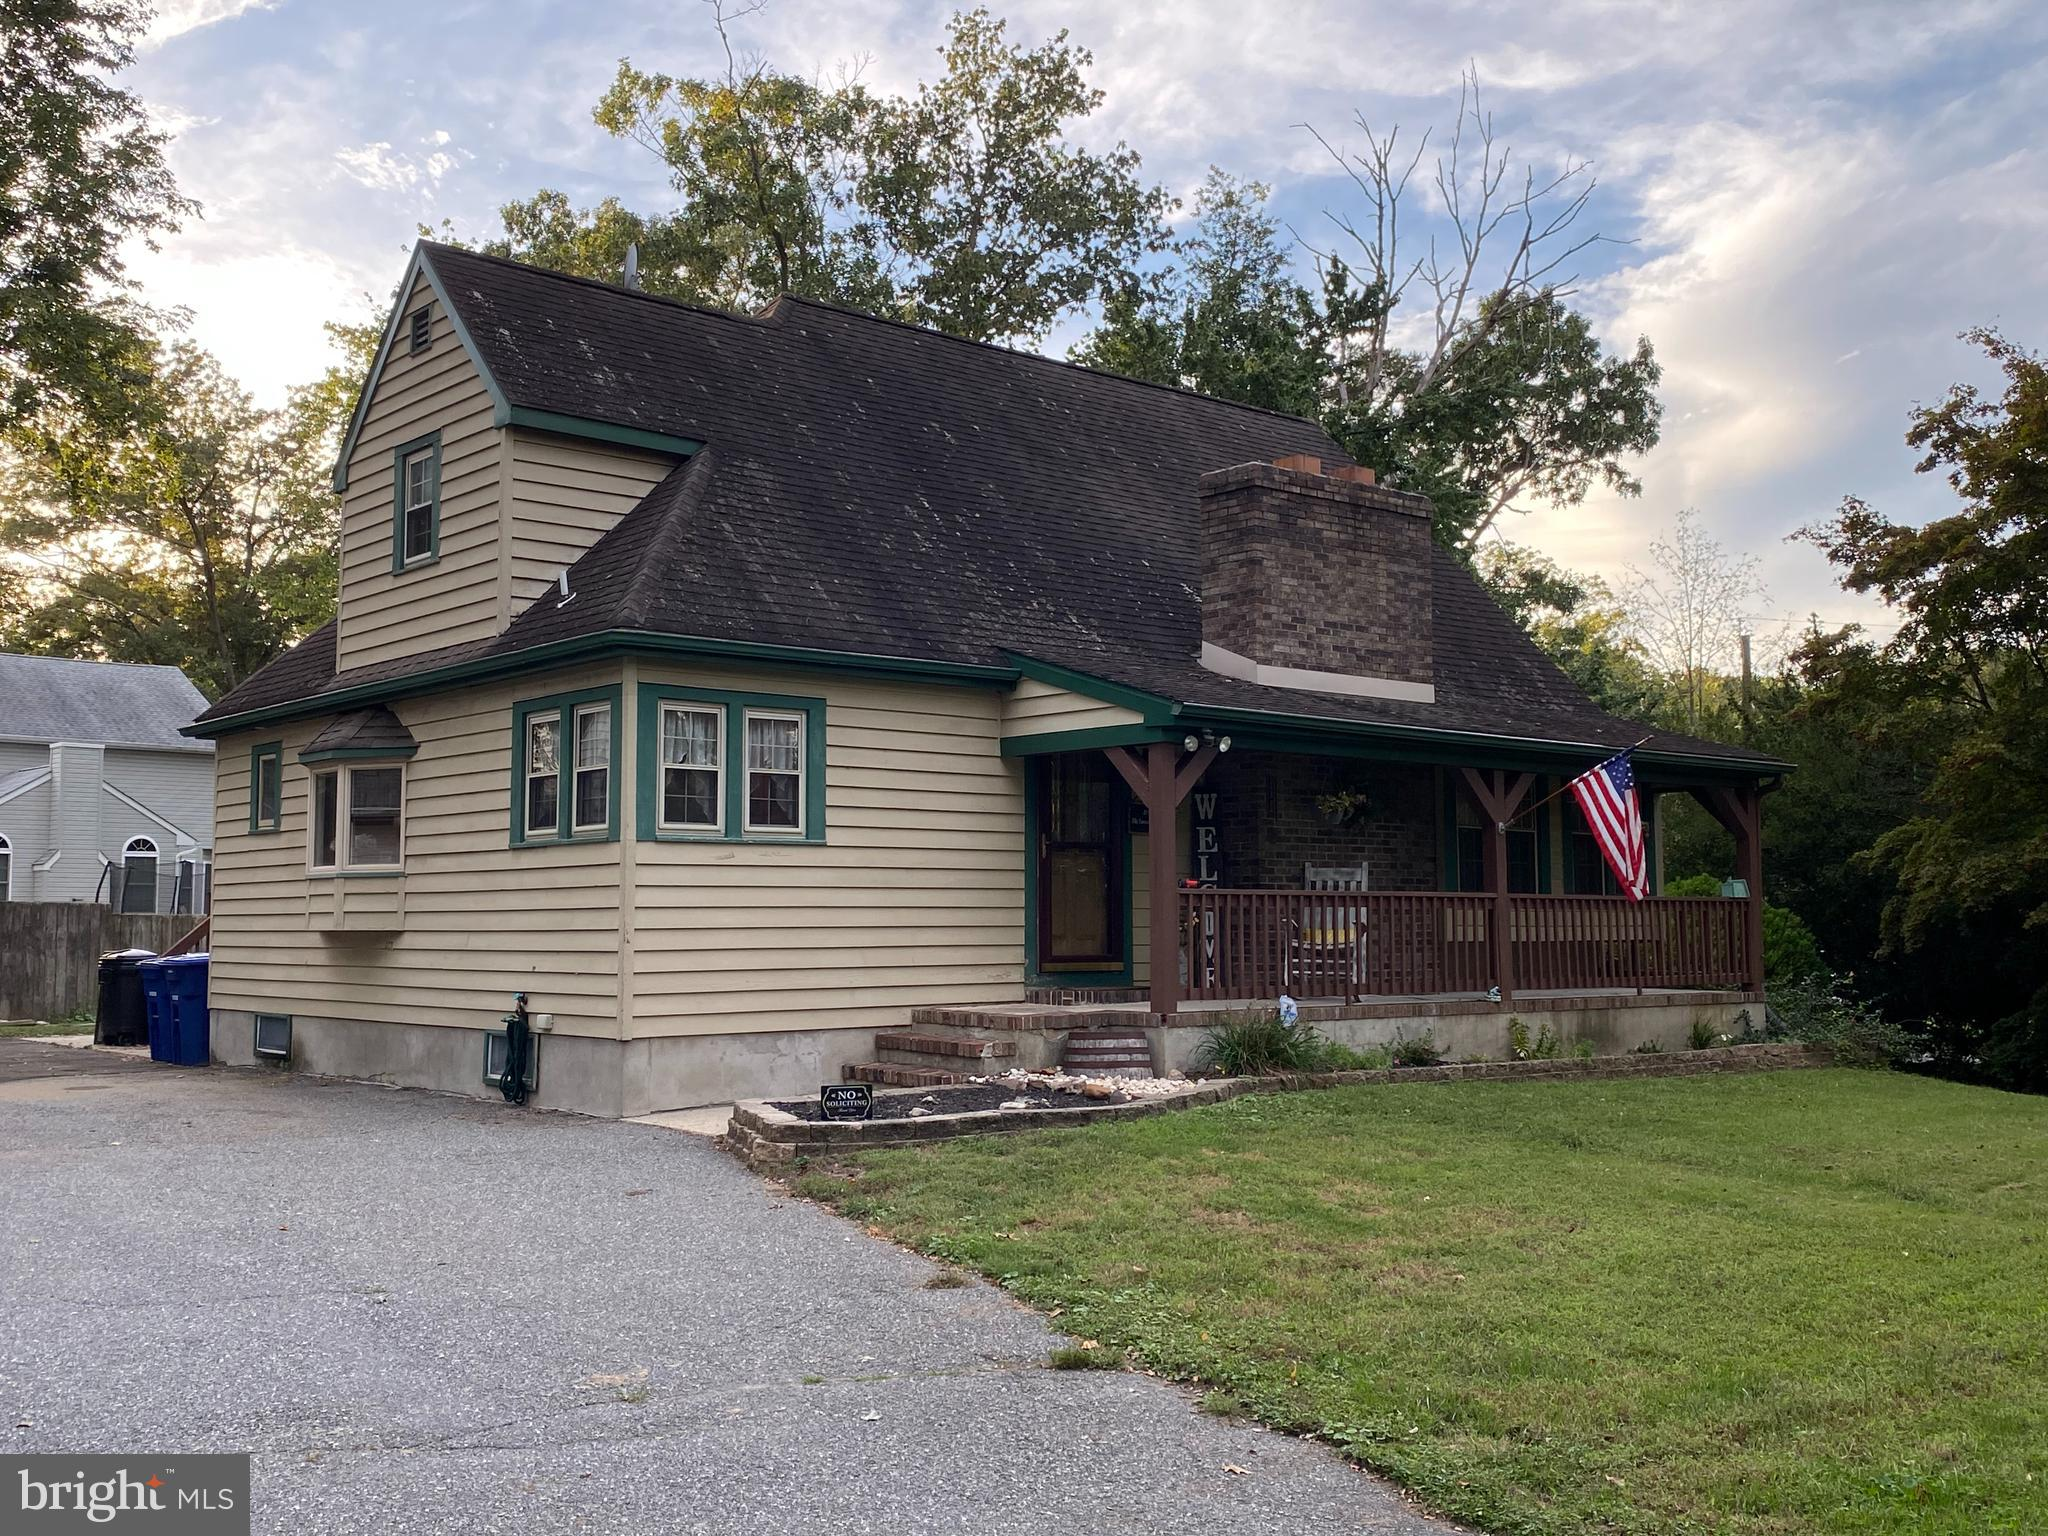 """SHOWINGS BEGIN SUNDAY Sept. 26. OPEN HOUSE 9/26 1-3 PM! Welcome to 118 New Jersey Ave. This Custom built Cape Cod in Hainesport Twp. has a rustic country charm that is ready for new owners.  This house has 4 bedrooms and 1 1/2 baths has been freshly painted.  Located on a premium corner lot in Rancocas Heights. Detached 2 car garage with extra storage space for lawn equipment, tools or a man cave! Front porch is inviting to sit and relax with a cup of coffee or glass of wine. As you enter into the large carpeted living room with exposed wood beam ceiling and a stone fireplace. (non working fireplace but easily can be converted  to be full functioning - fireplace is in As Is Condition) 2 bedrooms are located on the first floor. Inviting eat in kitchen with Black stainless steel appliances with gorgeous hardwood floors and Oak cabinets. Laundry room and full bathroom is also located on main floor. At the back of the house is an enclosed """"all season"""" porch with easy access to the back yard and detached garage. Upstairs is the master bedroom , 3rd bedroom with dark hardwood floors and a half bathroom.  Fully finished basement with laminate floors, TV/game area, bar, with plenty of space for a pool table, office, craft area and storage area. Carpets throughout .  Backyard has a play area with wooden swing set waiting for your kids. Bring your furry family...Dogs can have full run of the entire yard with invisible fence all ready installed. Washer and Dryer are Samsung.  Pack the family this house is ready for you to call it HOME and Ready to host friends and family for the upcoming holidays. Great community and school district! Elementary is K-8th.  Convenient to RT. 38, 295 and NJ turnpike. Easy commute to Philadelphia. Lots of shopping and excellent restaurants."""